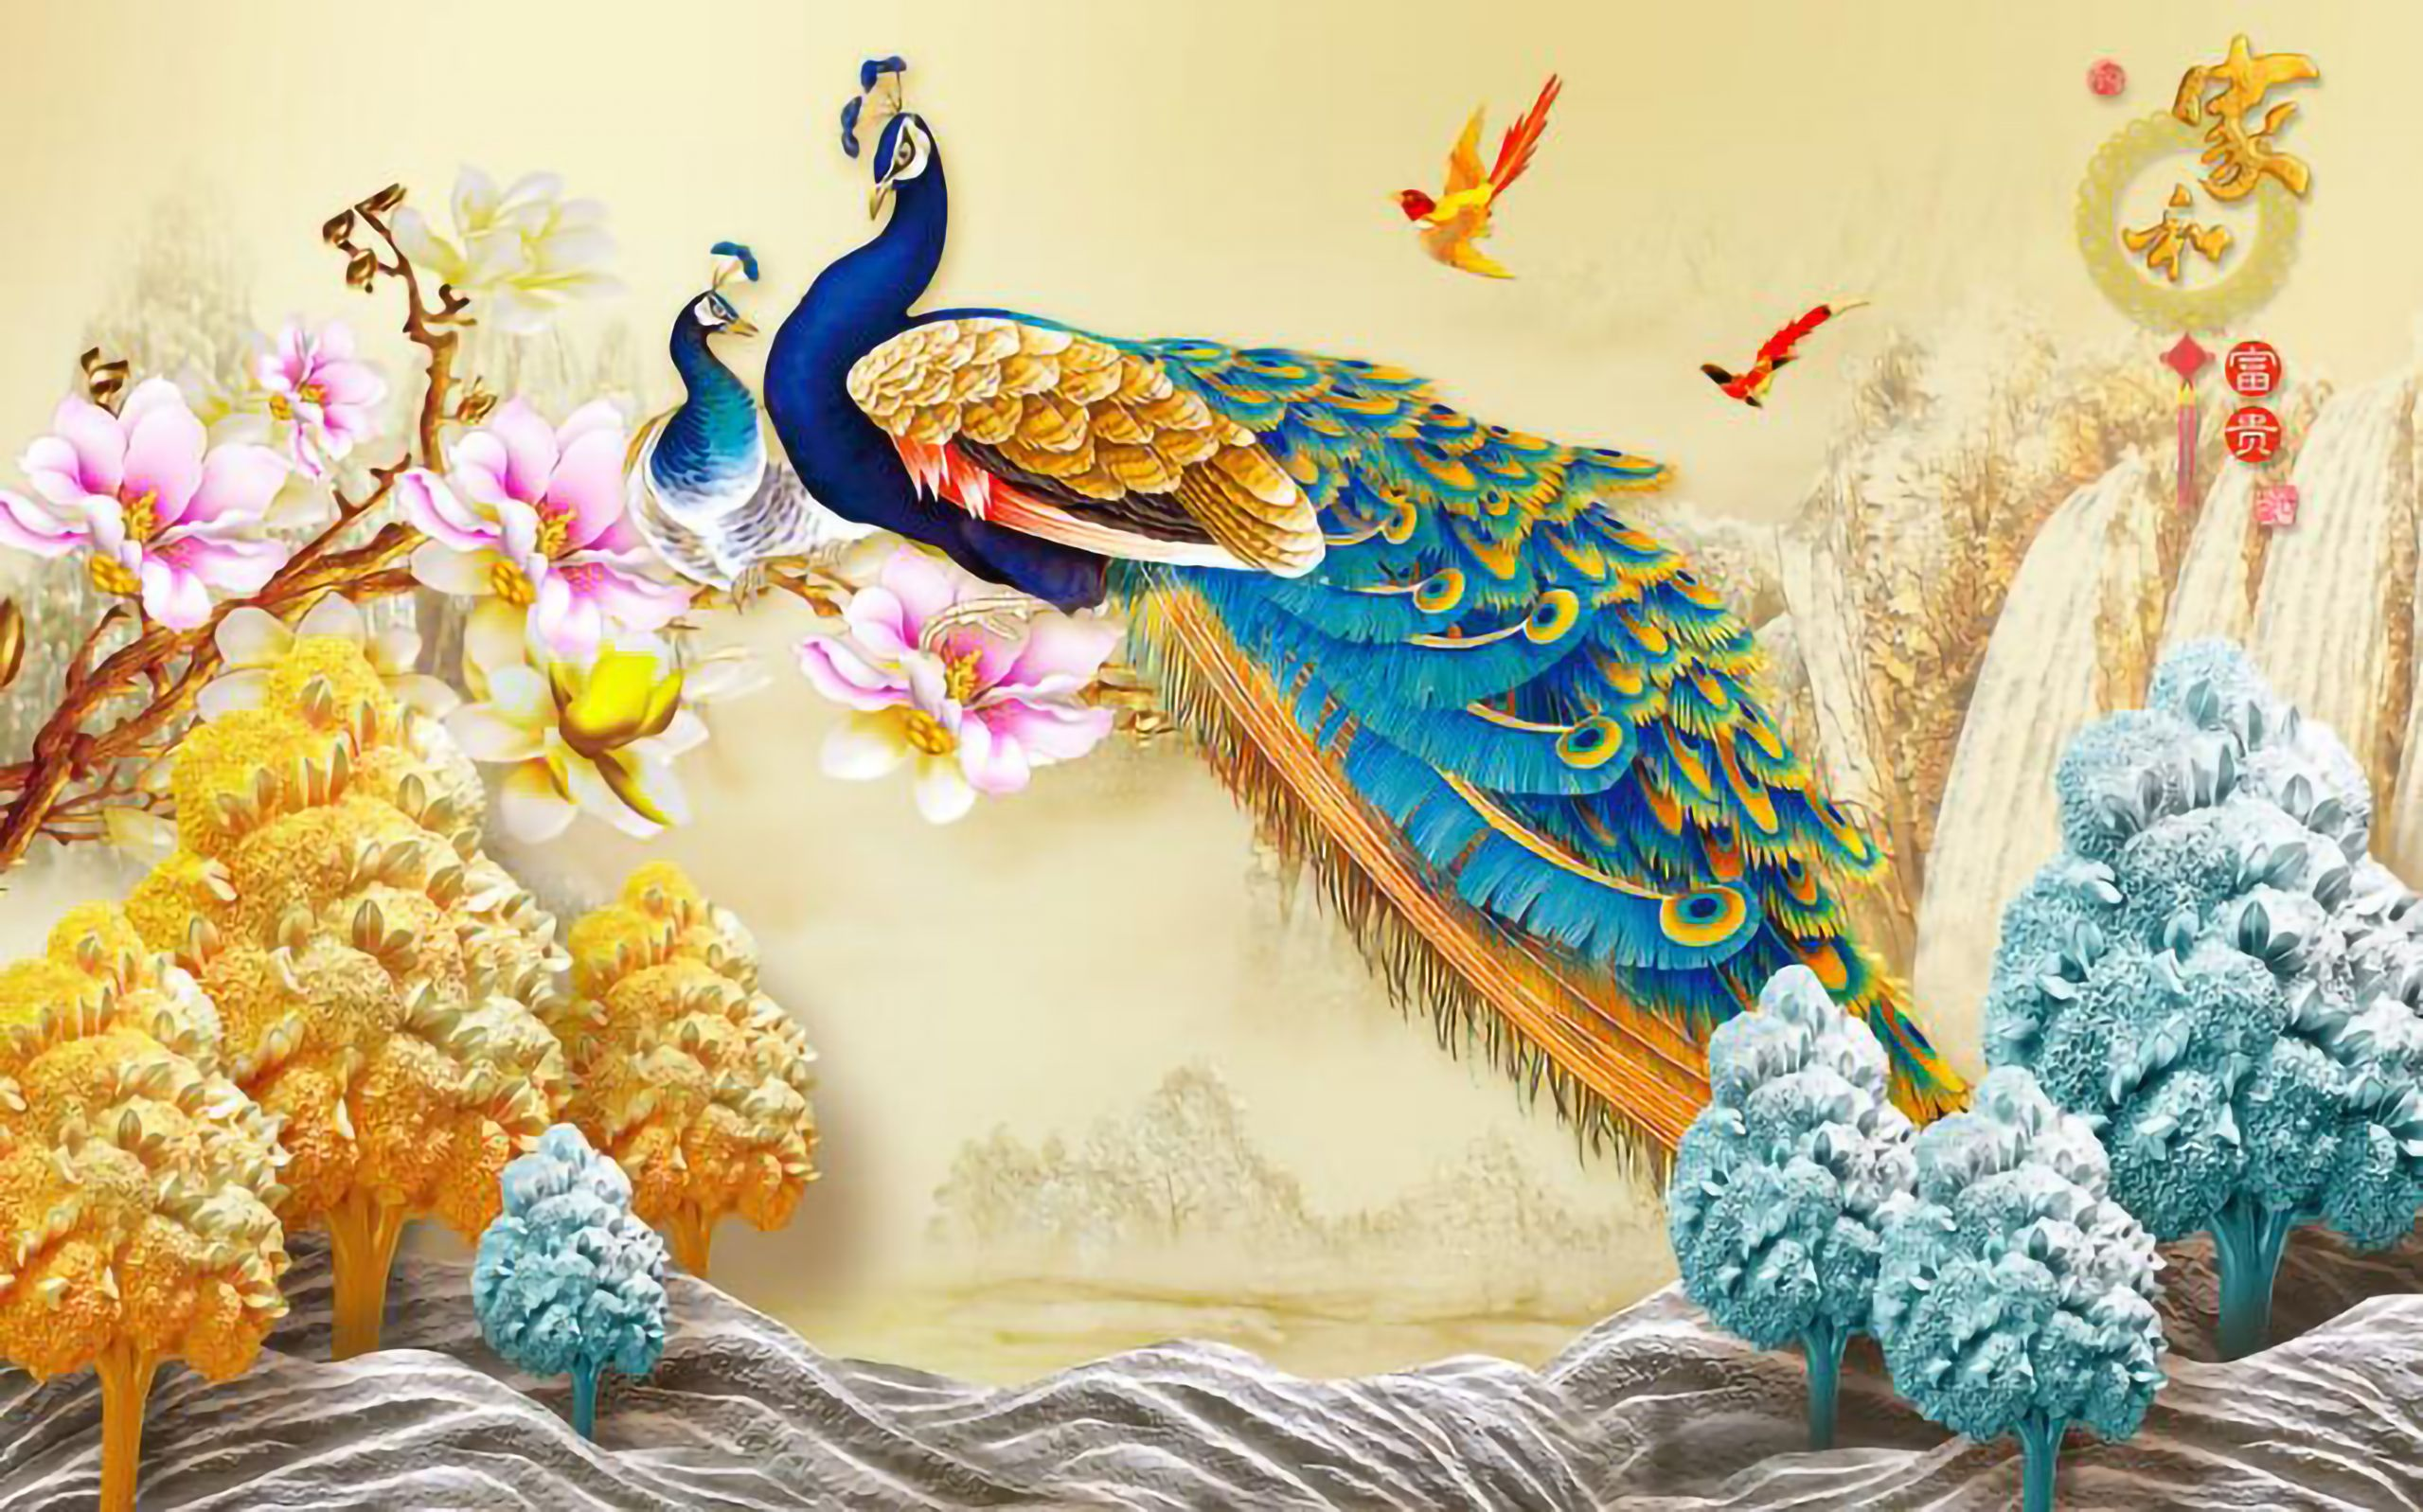 Chinese 3d Wall Sticker Wall Painting Peacock Themed Wall Painting 3d Wallpaper Mural Painting